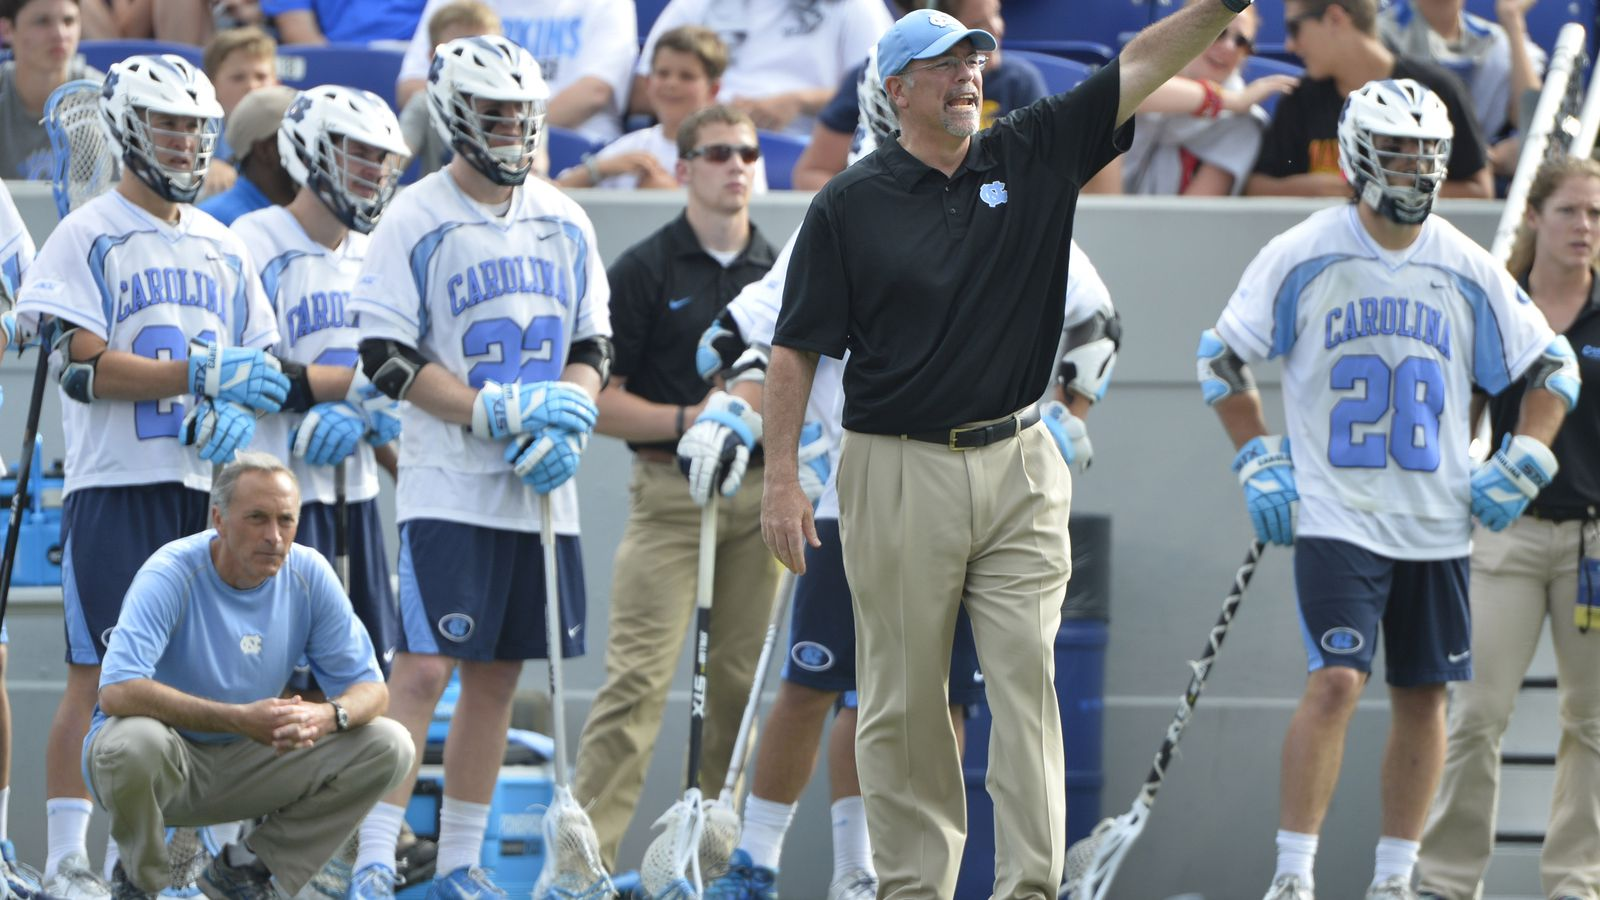 Maryland vs. North Carolina, 2016 NCAA Lacrosse Championship: Time, TV schedule and ...1600 x 900